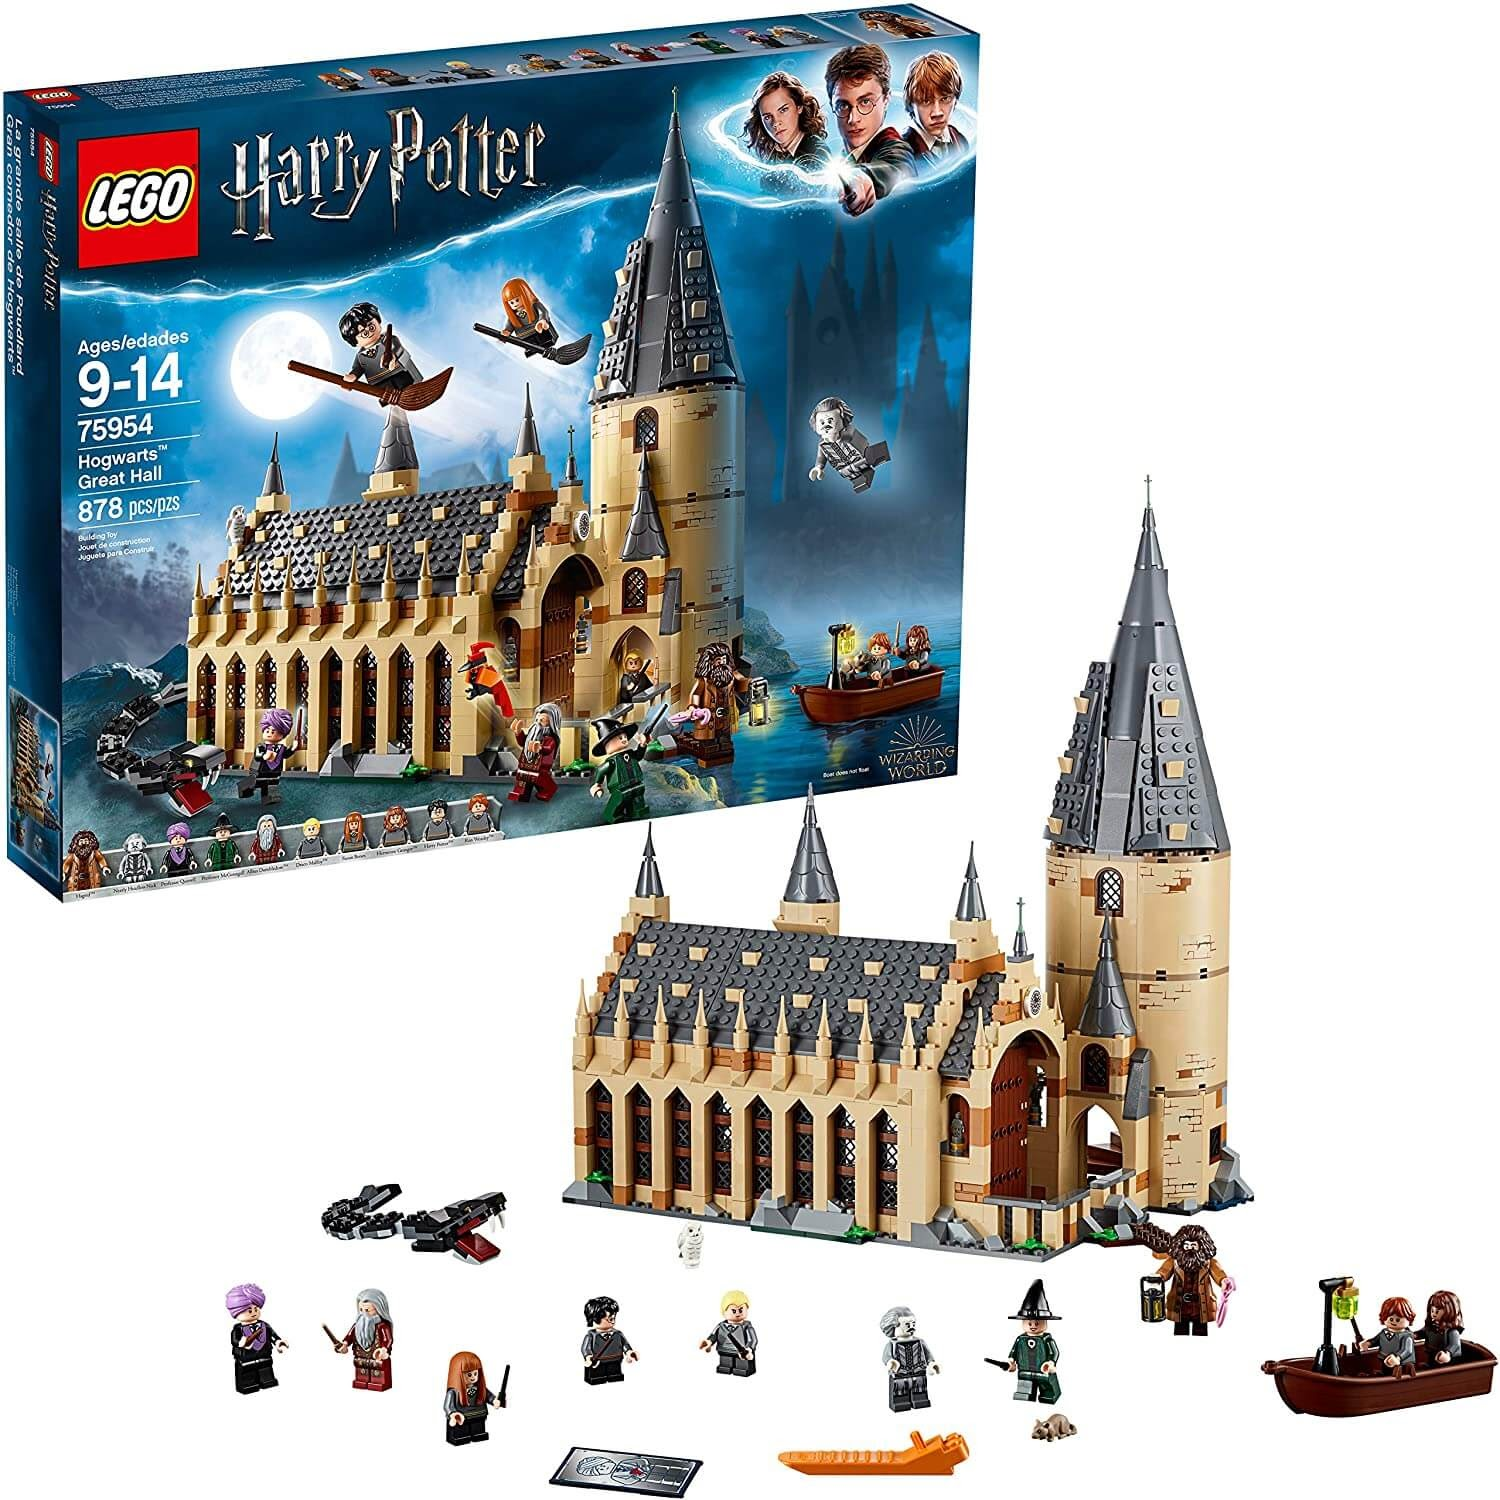 Harry Potter Hogwarts Great Hall Lego Set